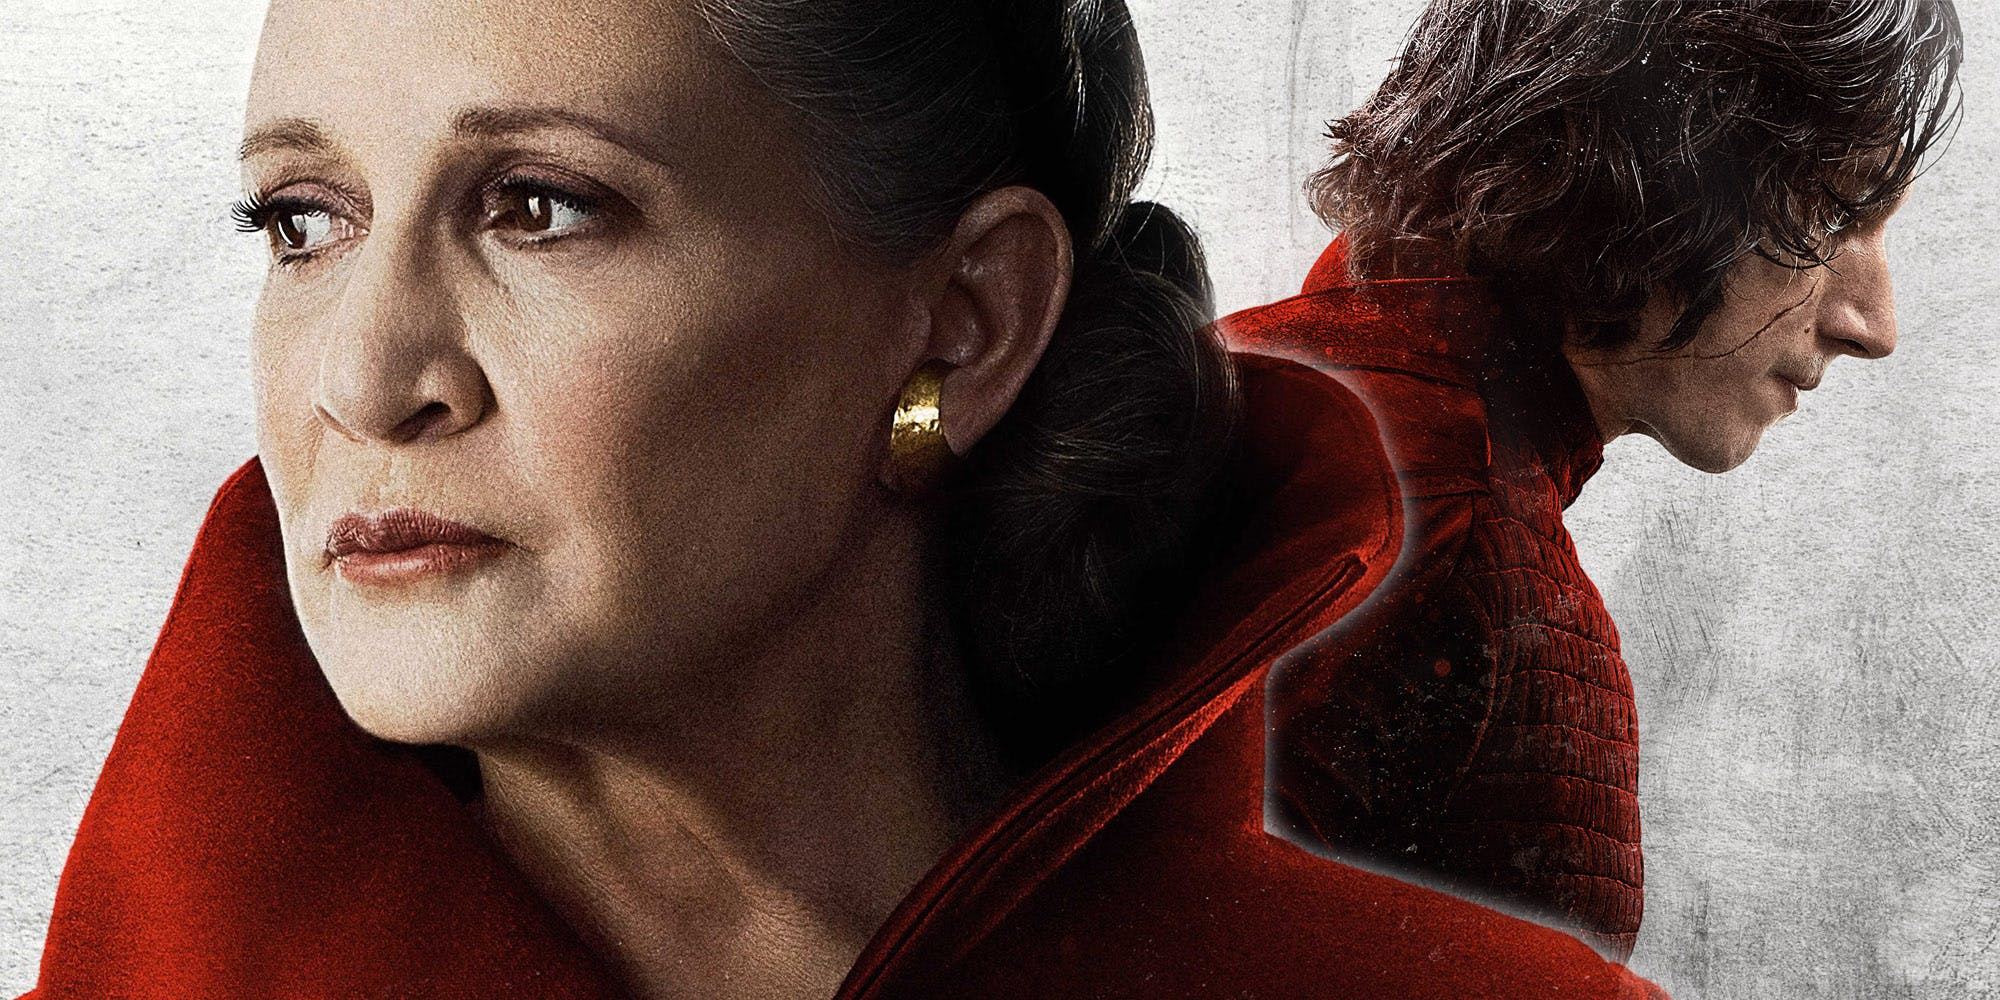 Promotional image of Leia and Kylo Ren from The Last Jedi.